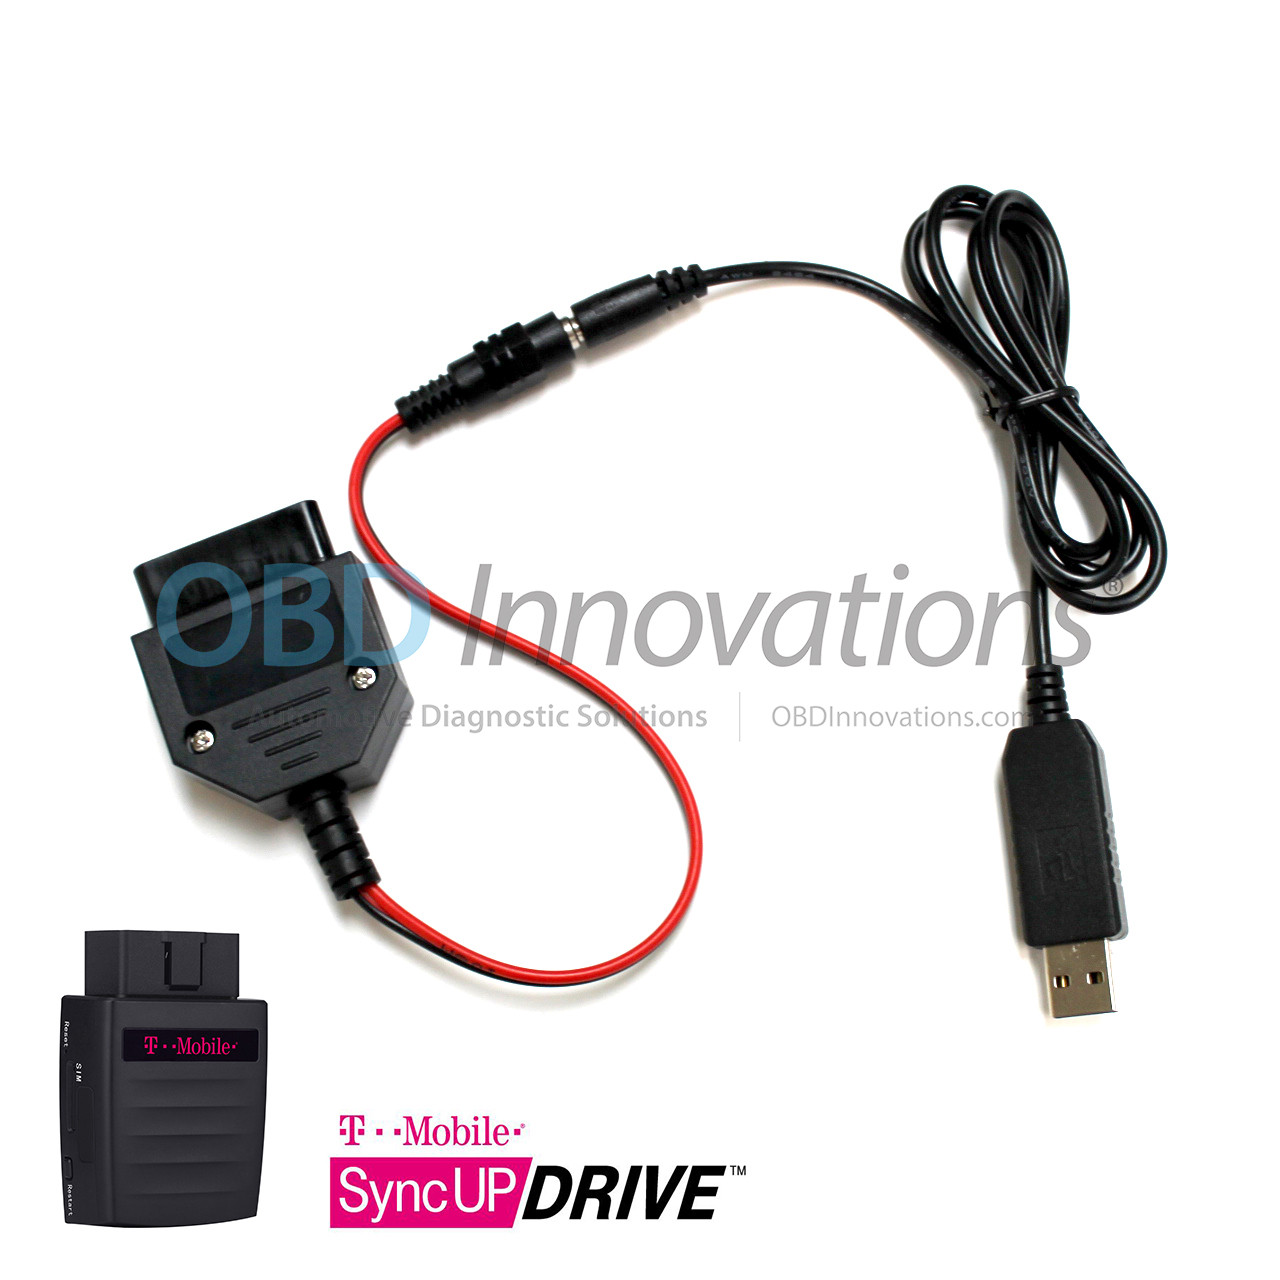 Usb Obd2 Power Adapter For T Mobile Syncup Drive Wifi Hotspot Gm Obd Ii Wiring Diagram Door Locks